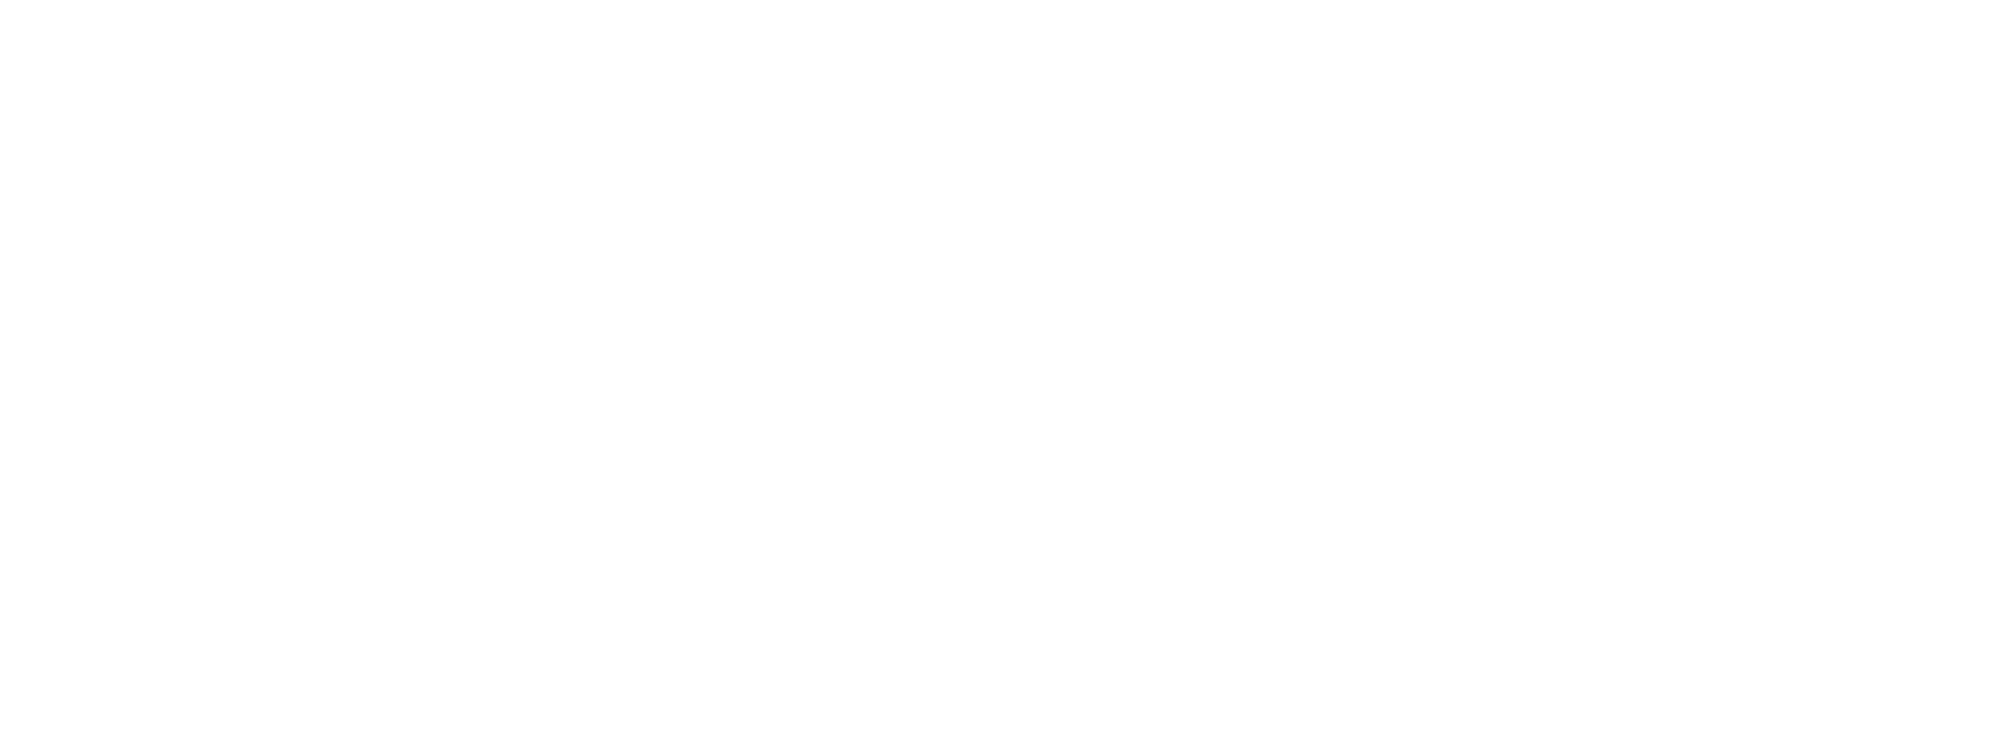 Richard Sikora-logo-white.png